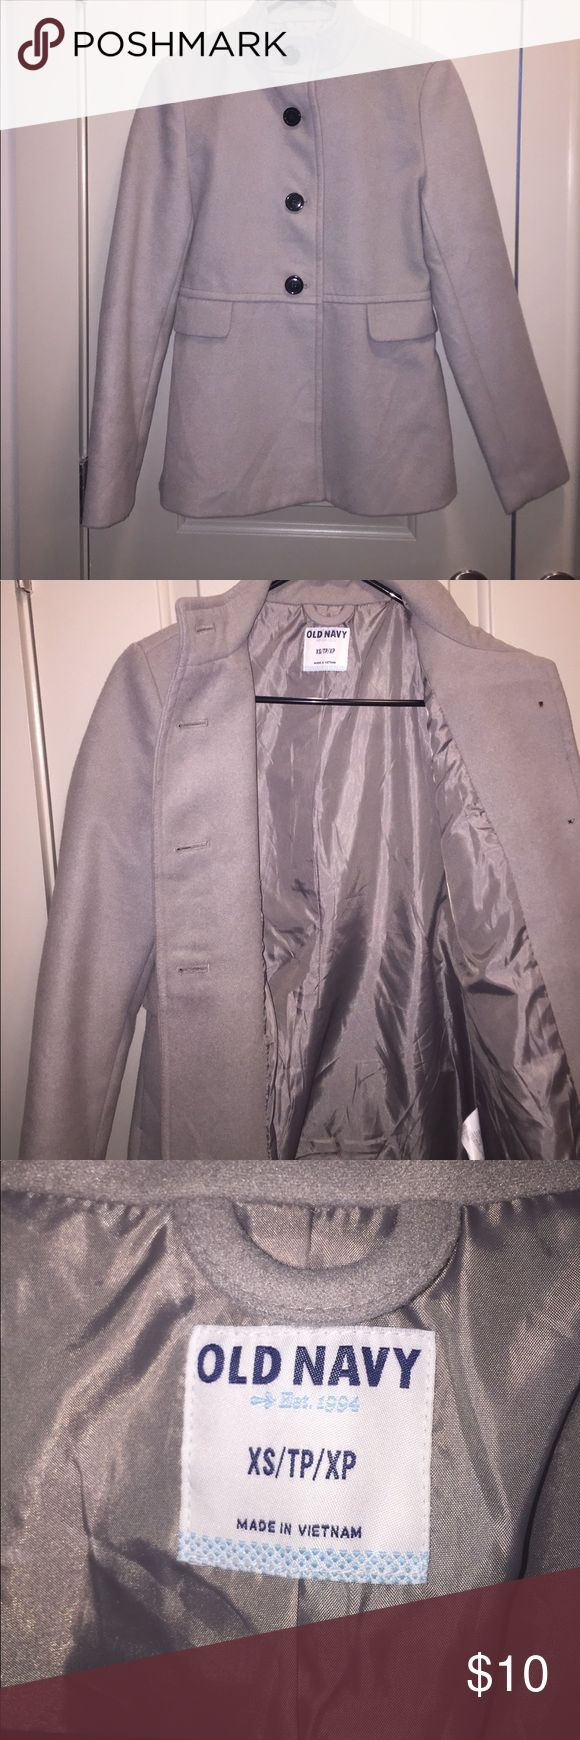 Old Navy - Light Grey Peacoat XS Super cute light grey pea coat for sale! Very stylish and in good condition. Not very noticeable pink mark on the back of jacket(see pic). *Price is negotiable* Old Navy Jackets & Coats Pea Coats